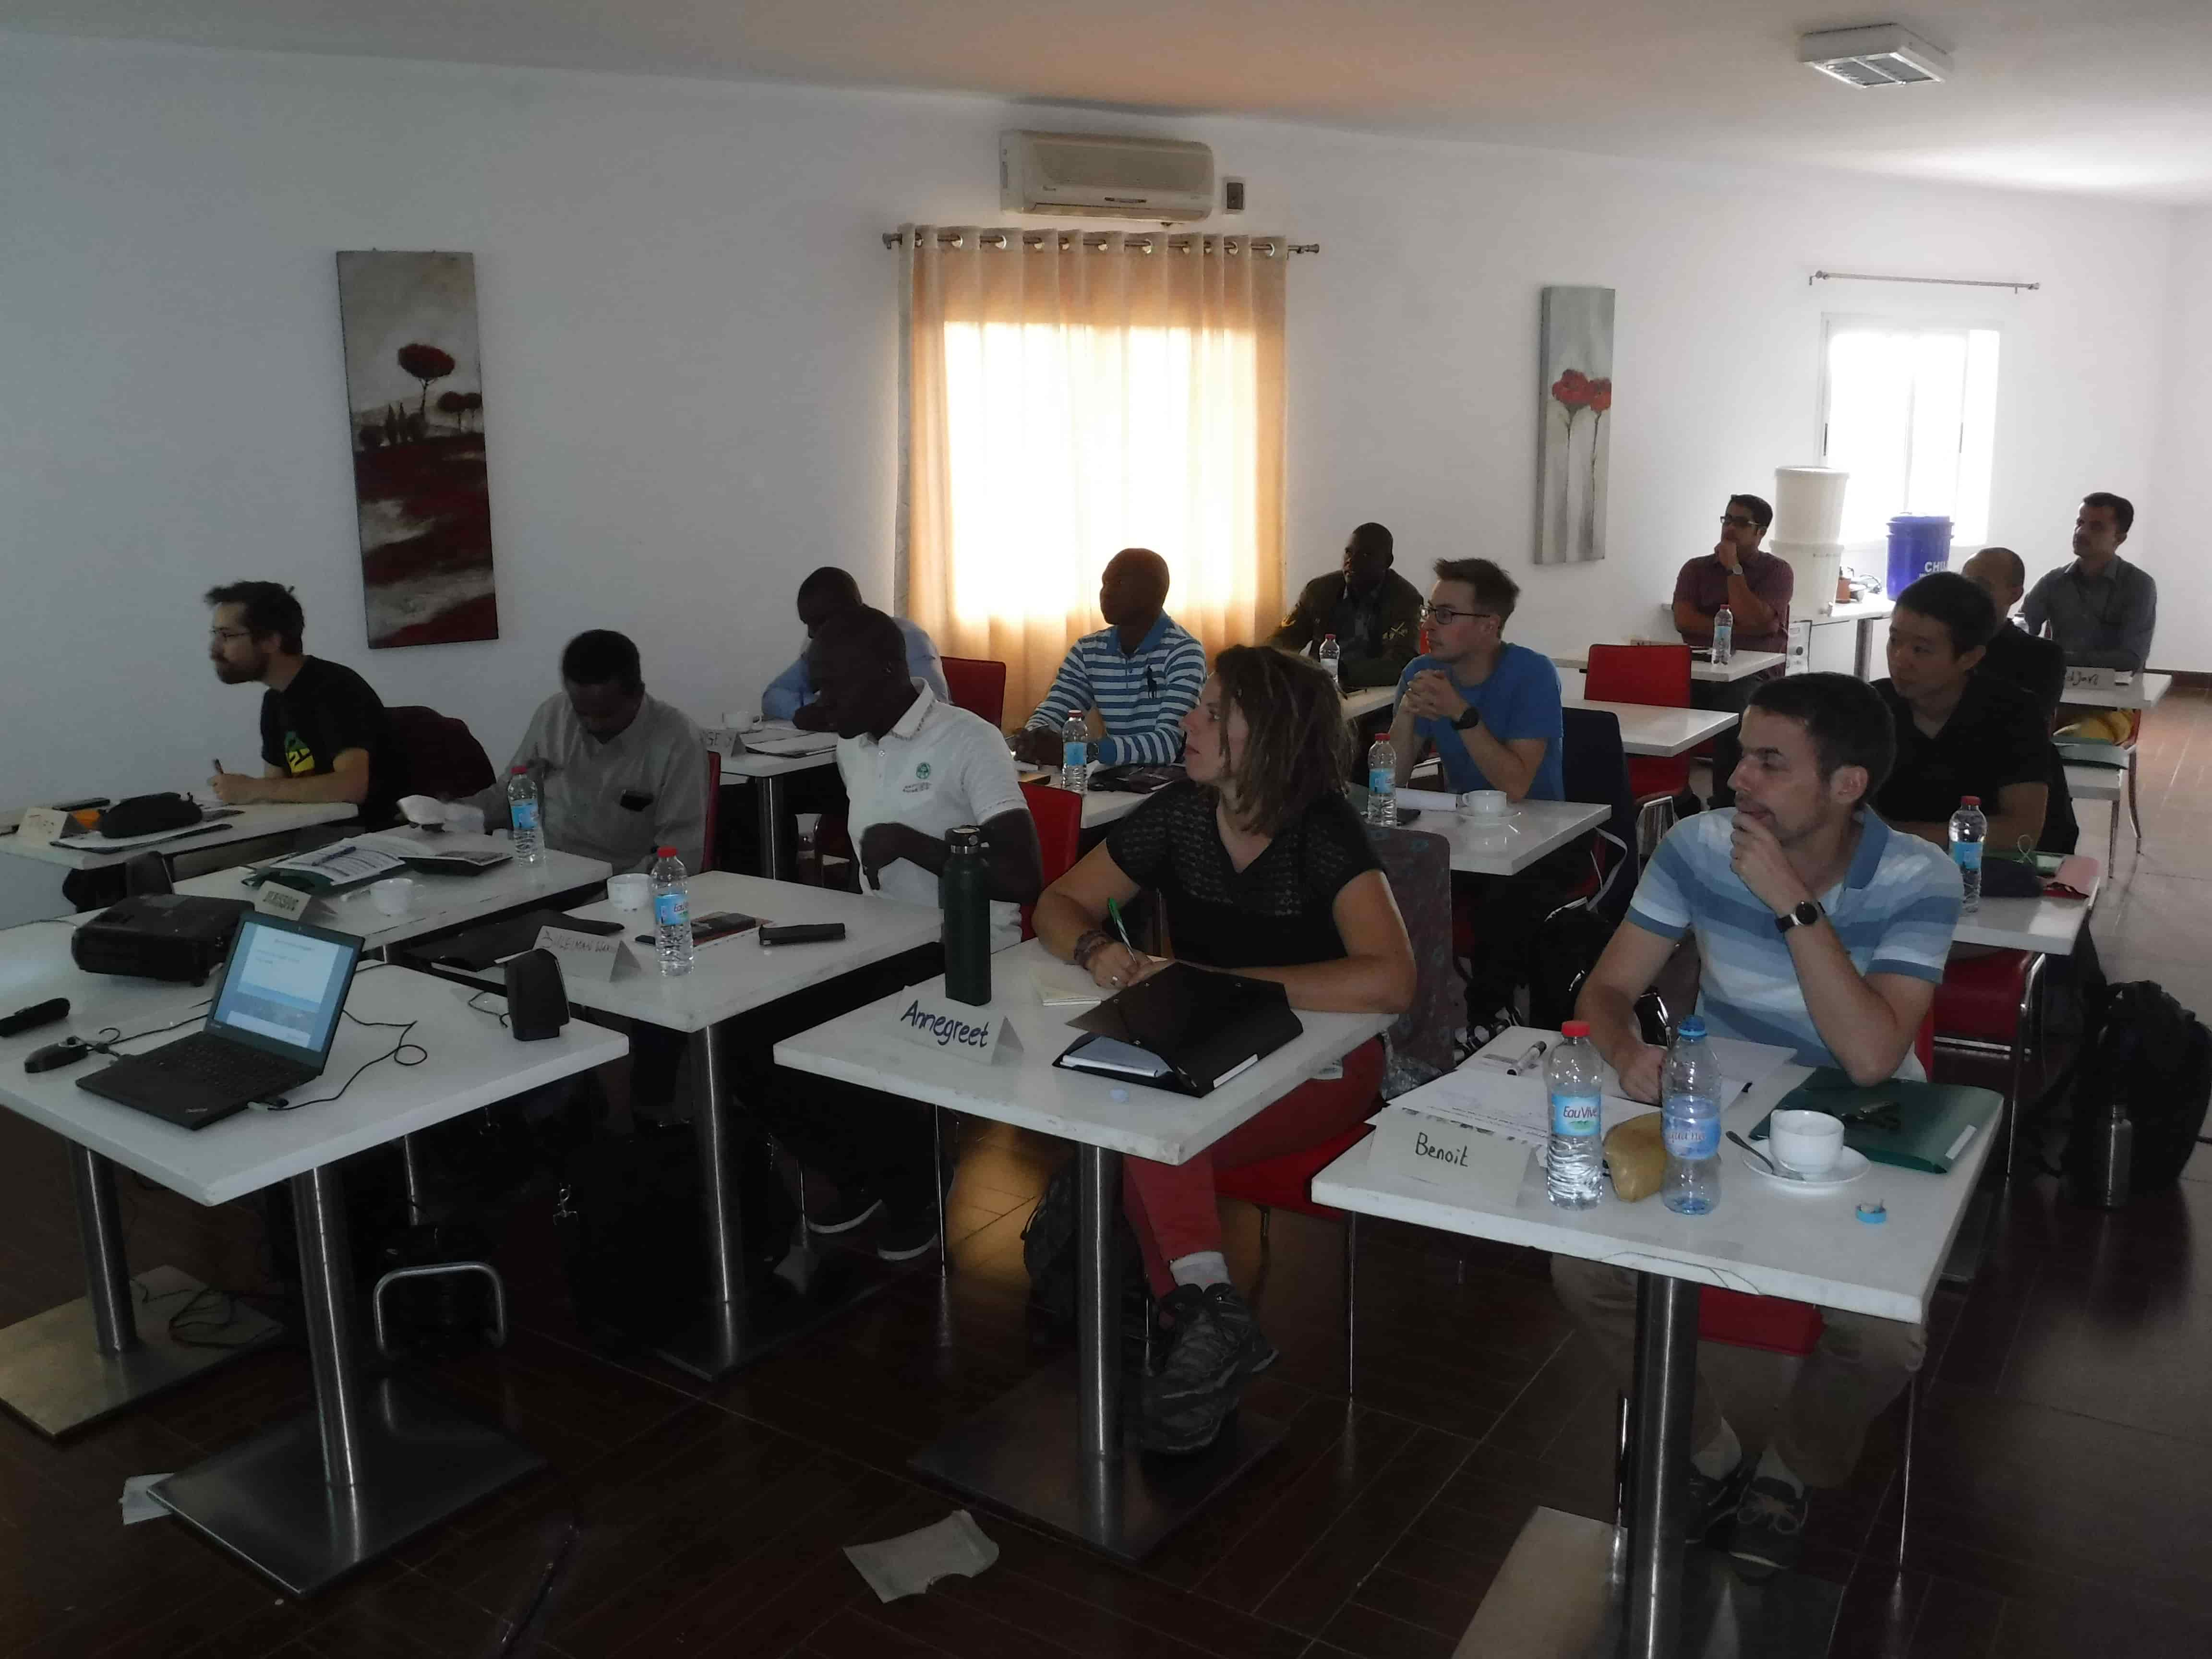 Classroom - water infrastructure training